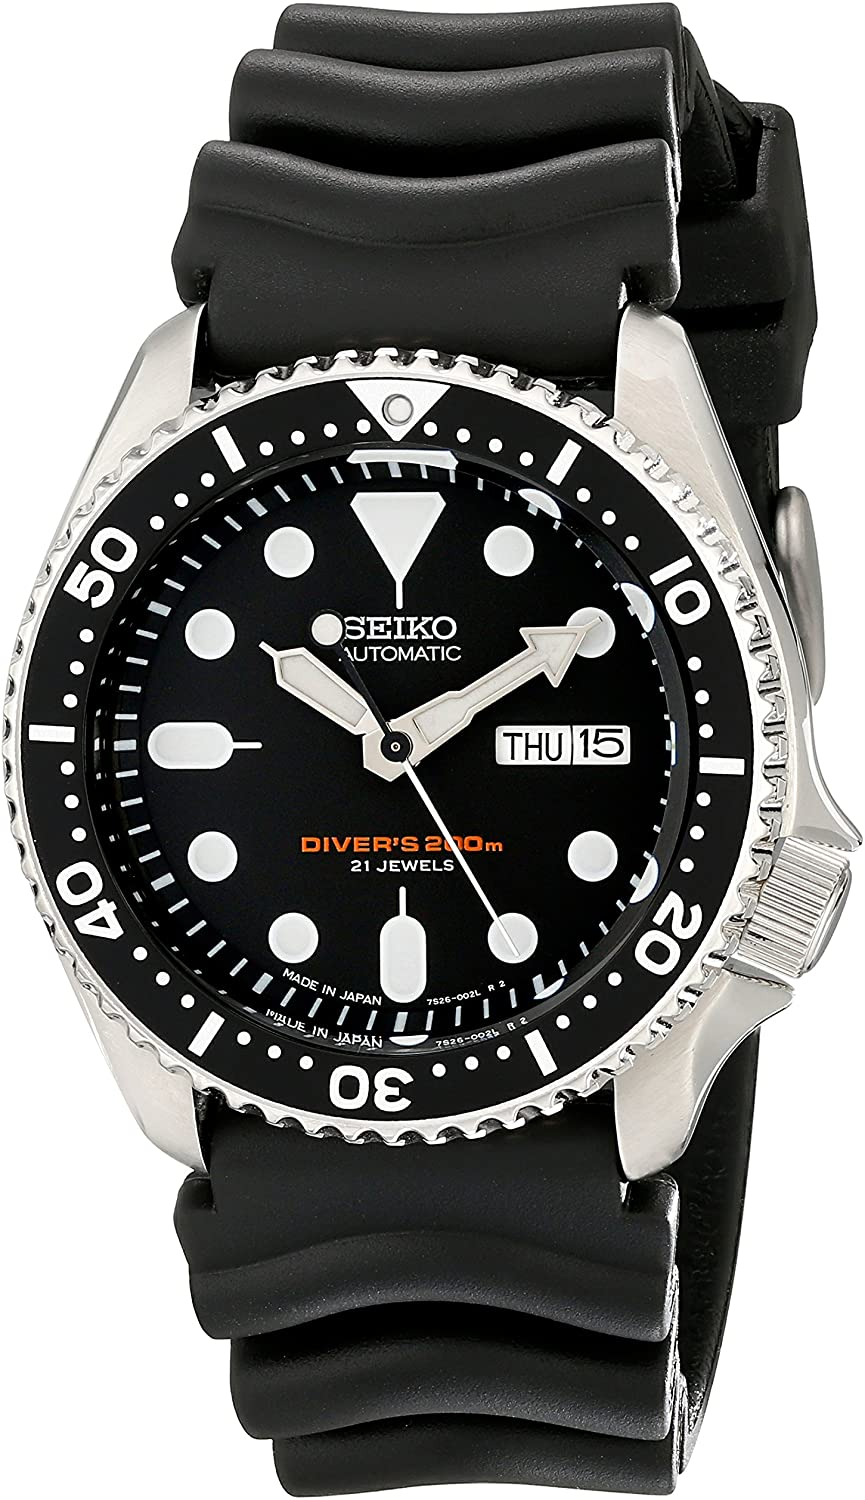 Seiko SKX007J1 Analog Japanese-Automatic Black Rubber Diver s Watch